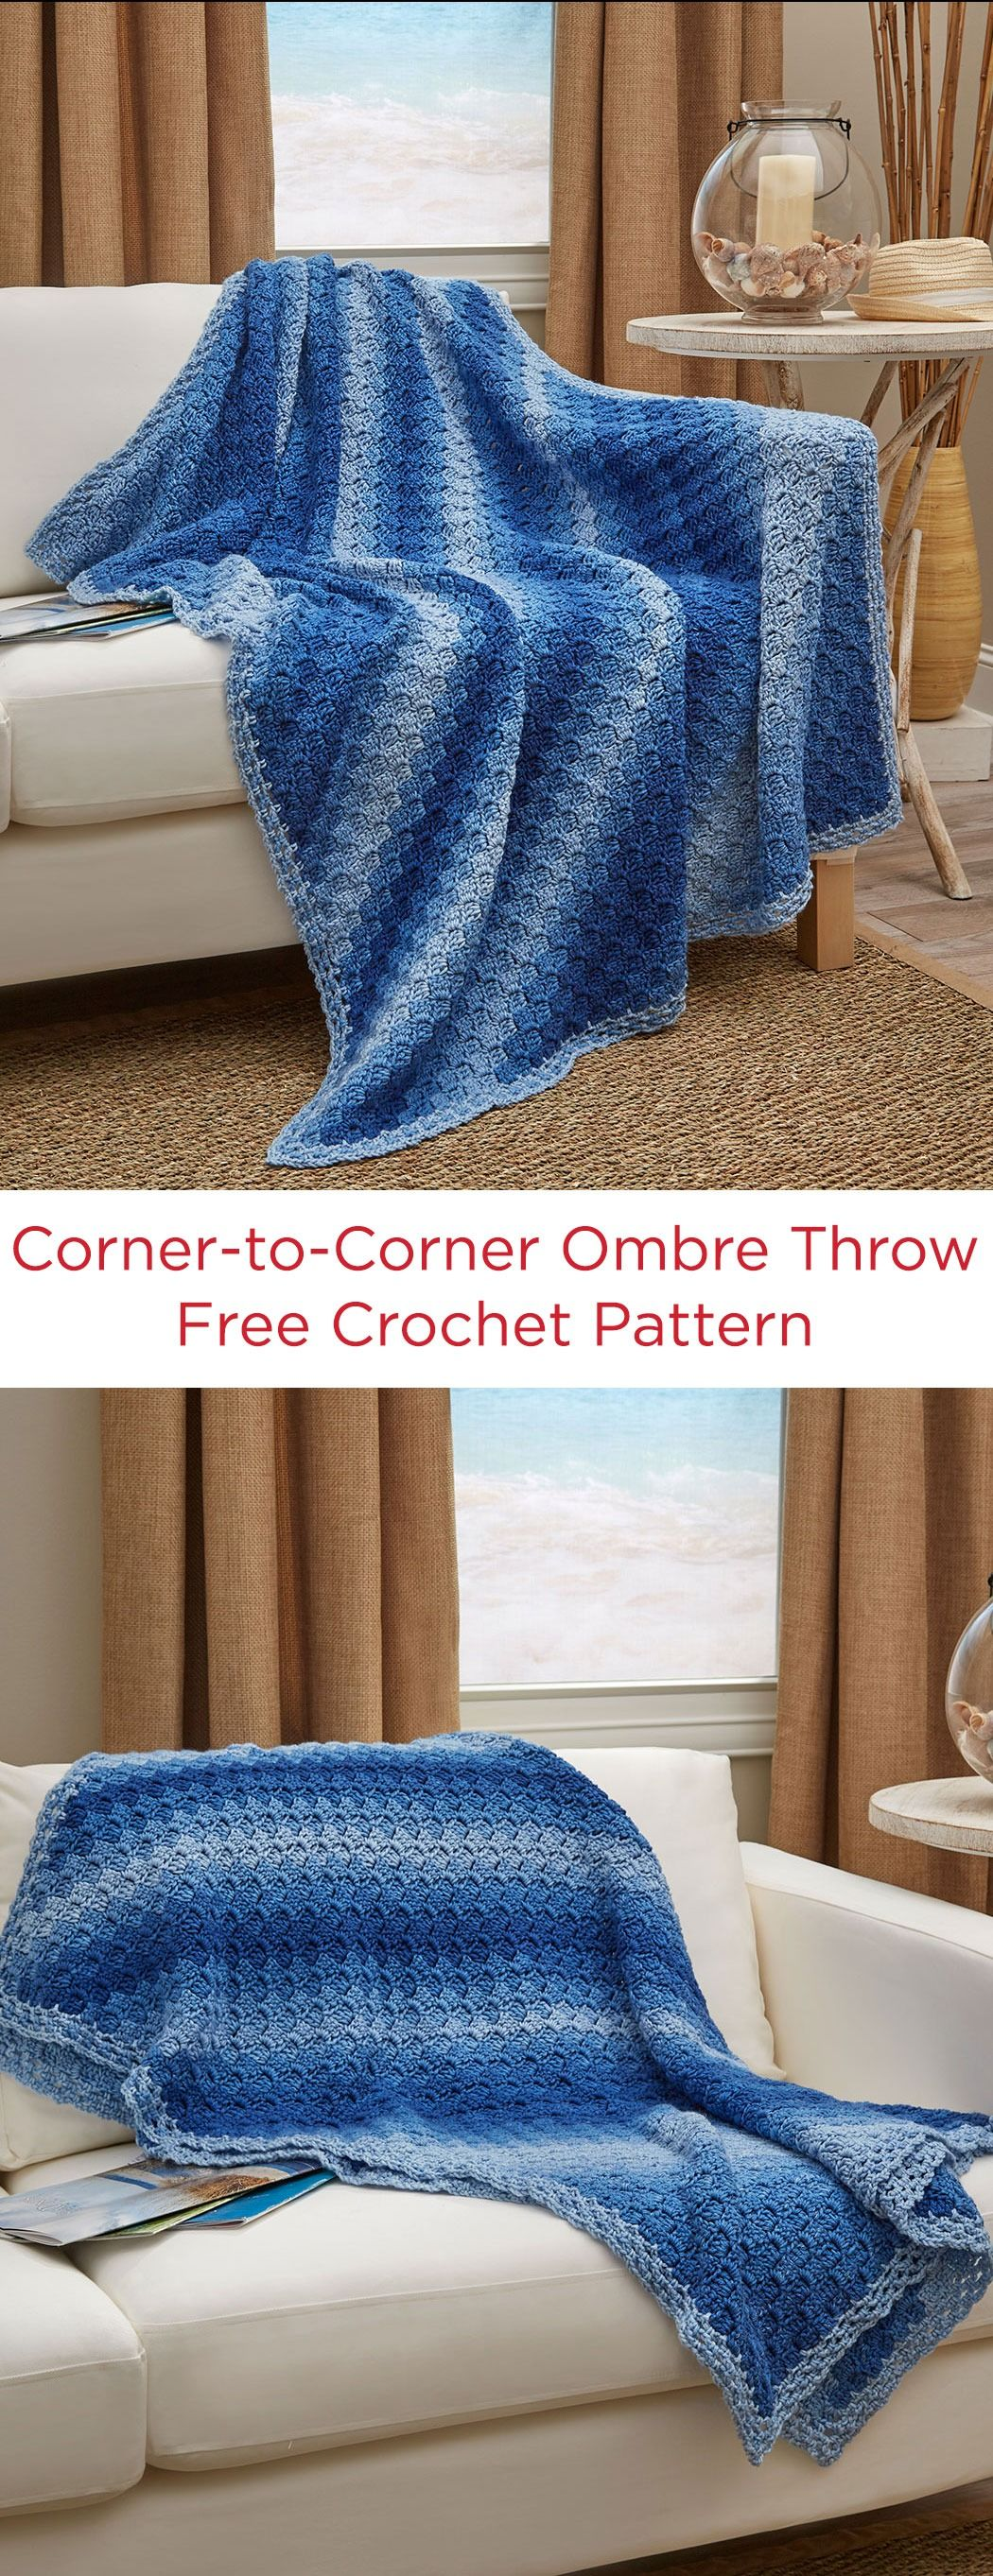 Corner To Corner Ombre Throw Free Crochet Pattern In Red